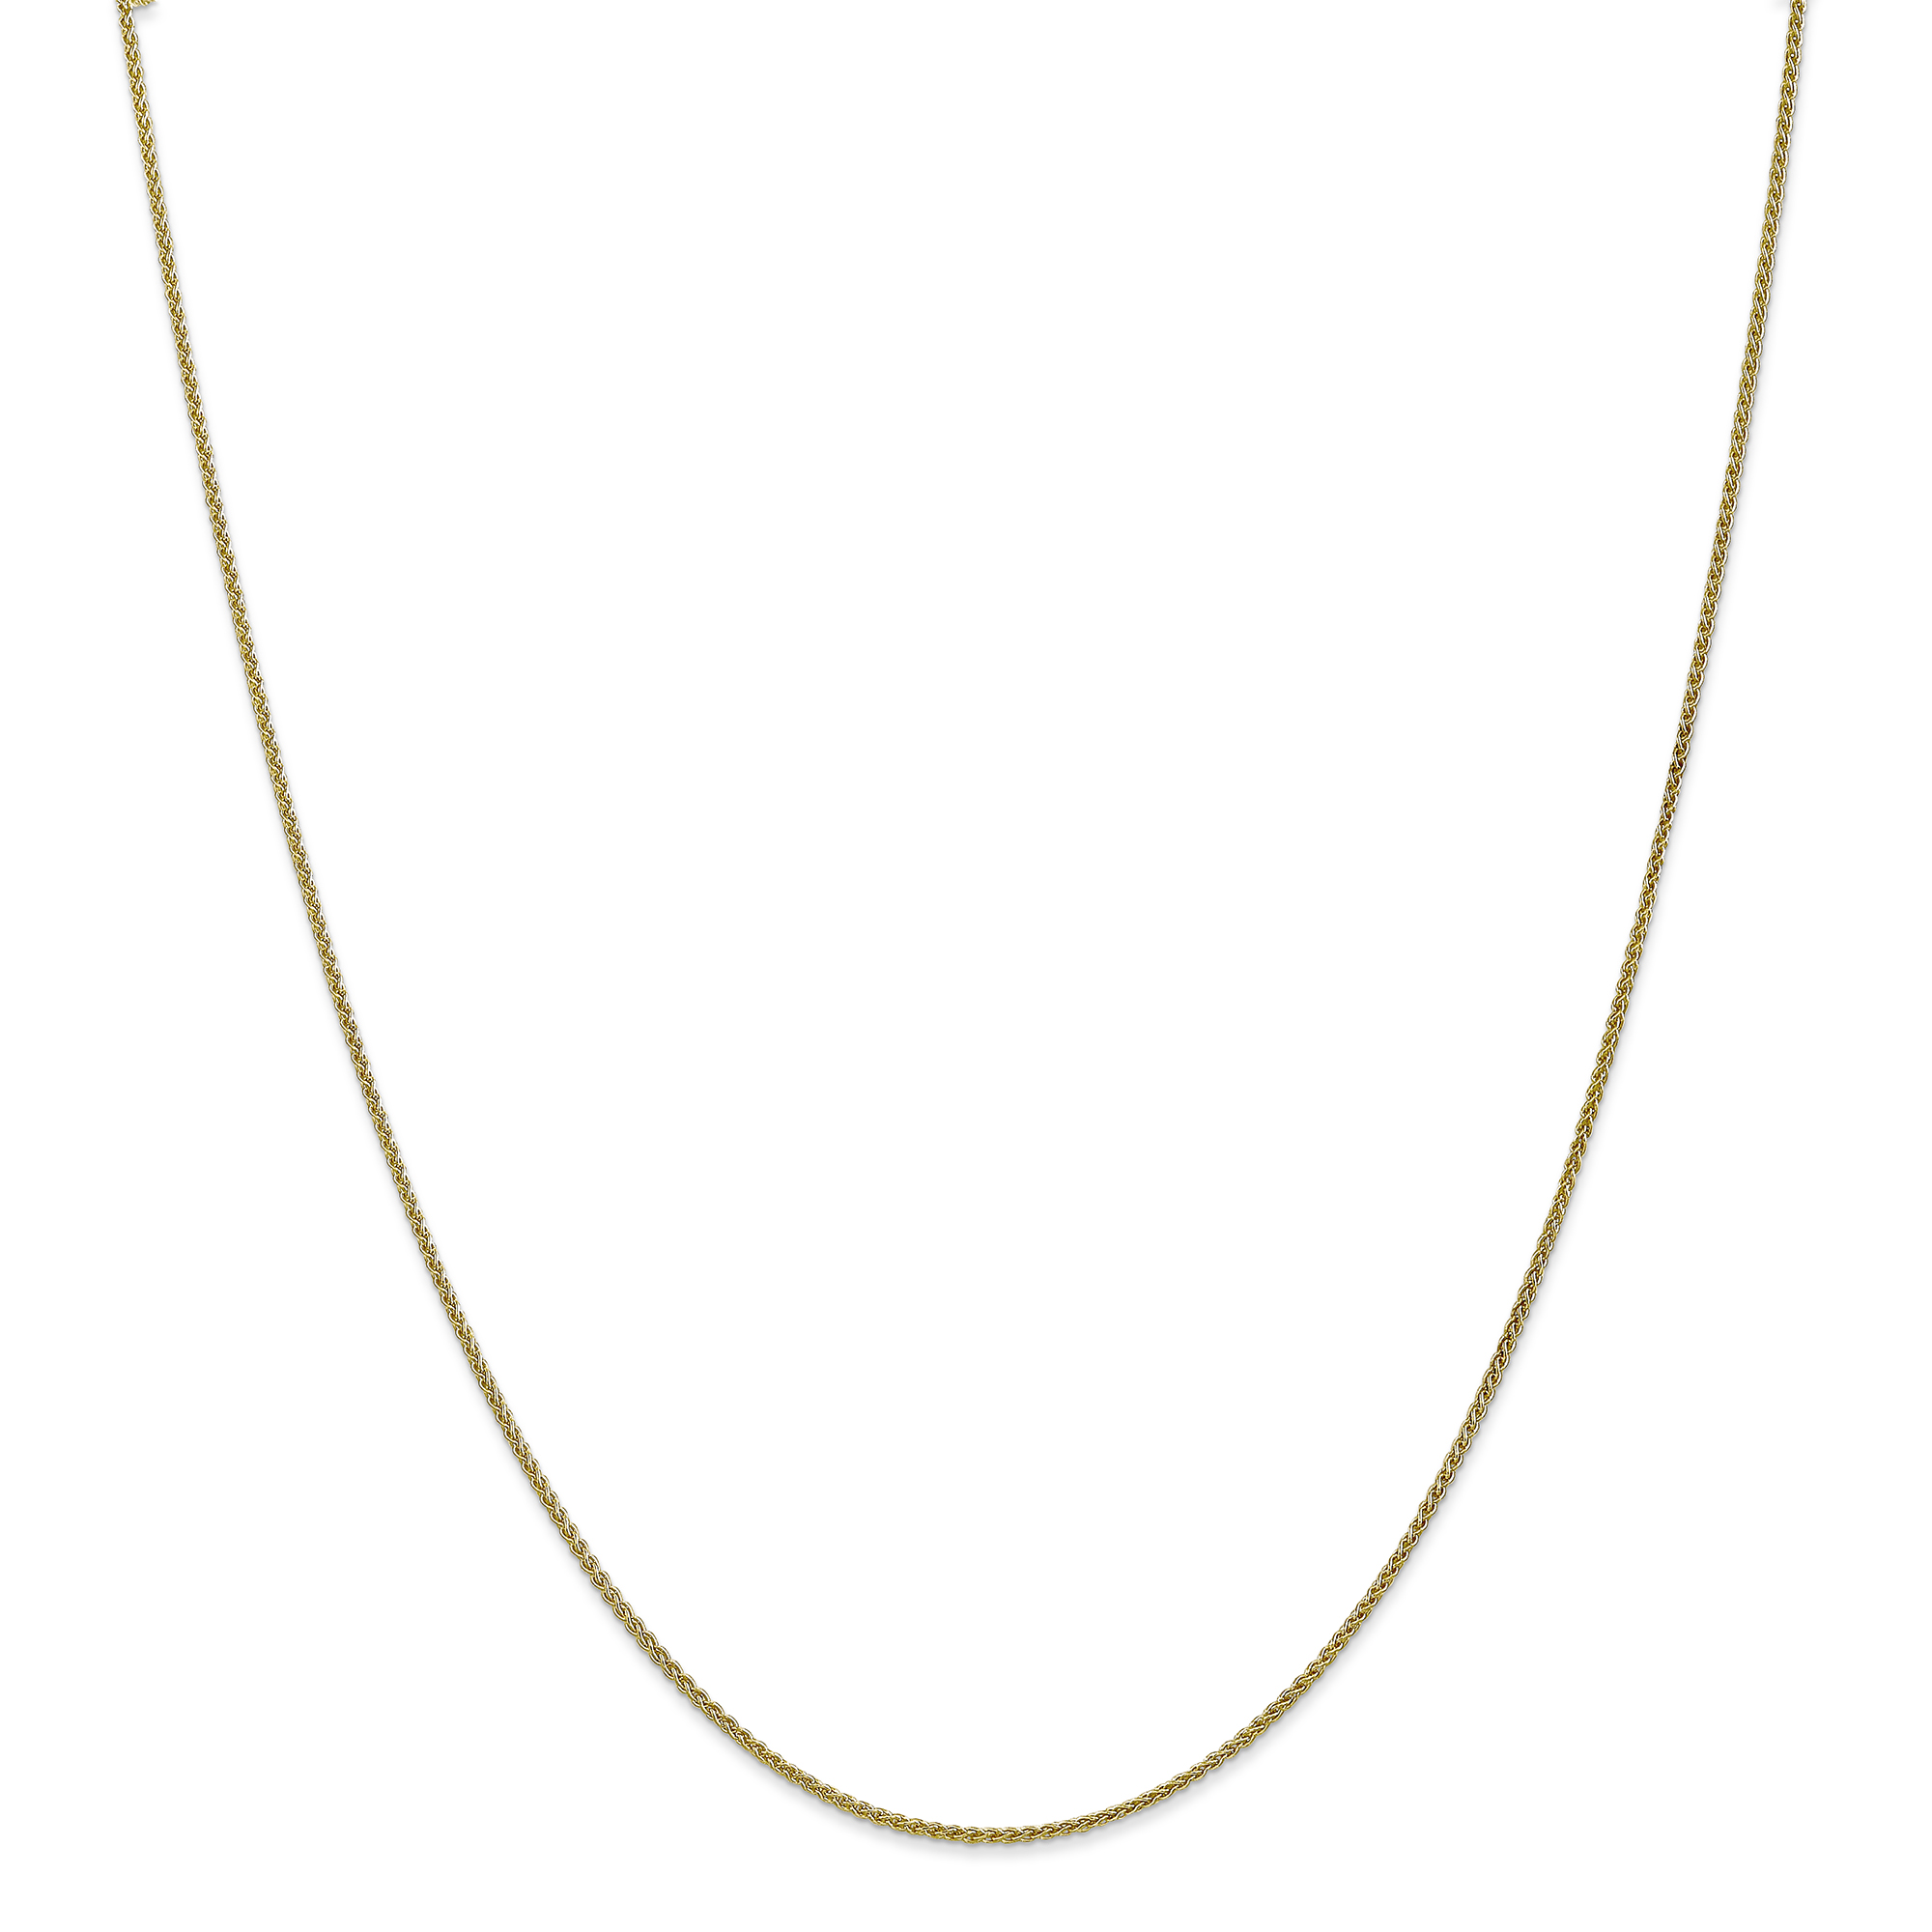 10k Yellow Gold 16in 1.20mm Wheat Necklace Chain